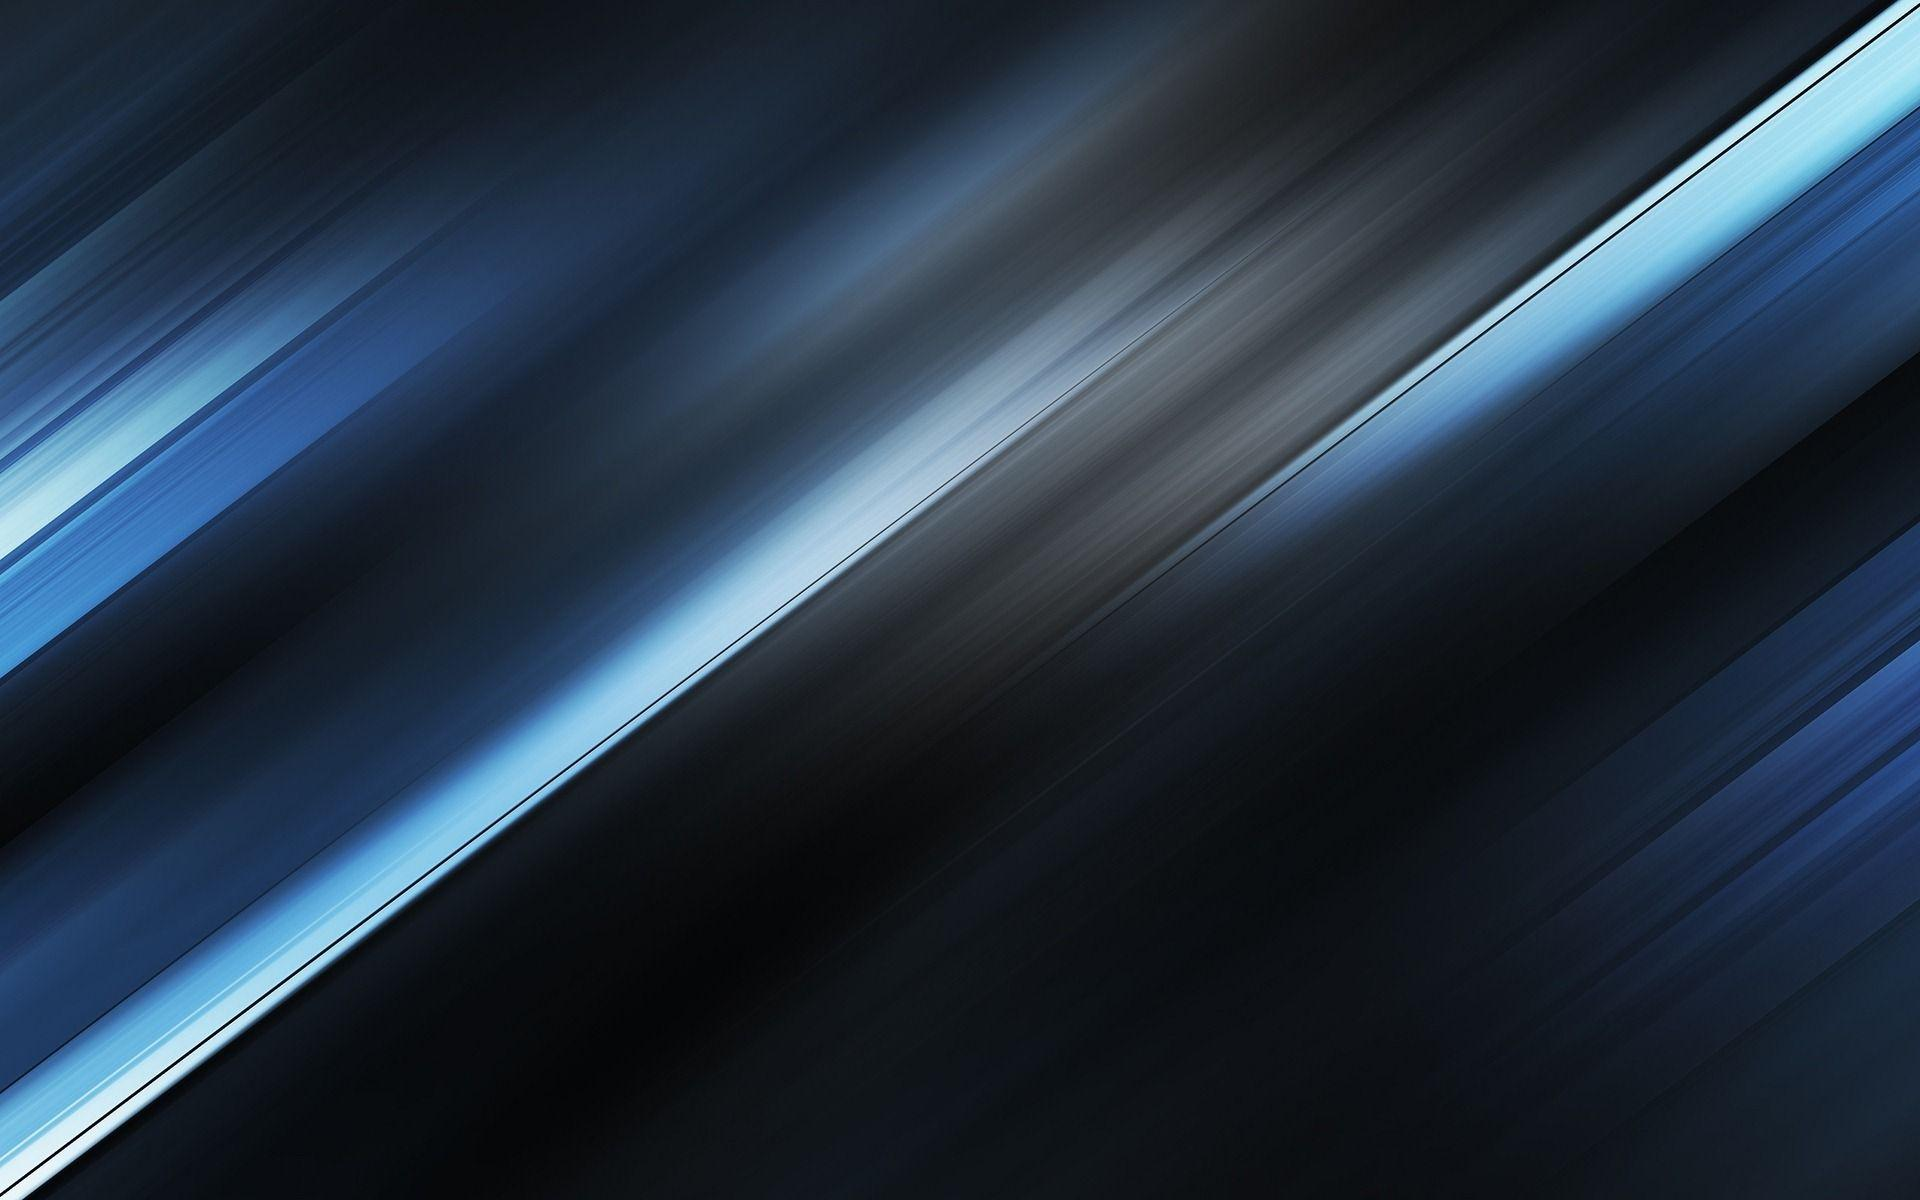 Abstract Desktop Wallpapers